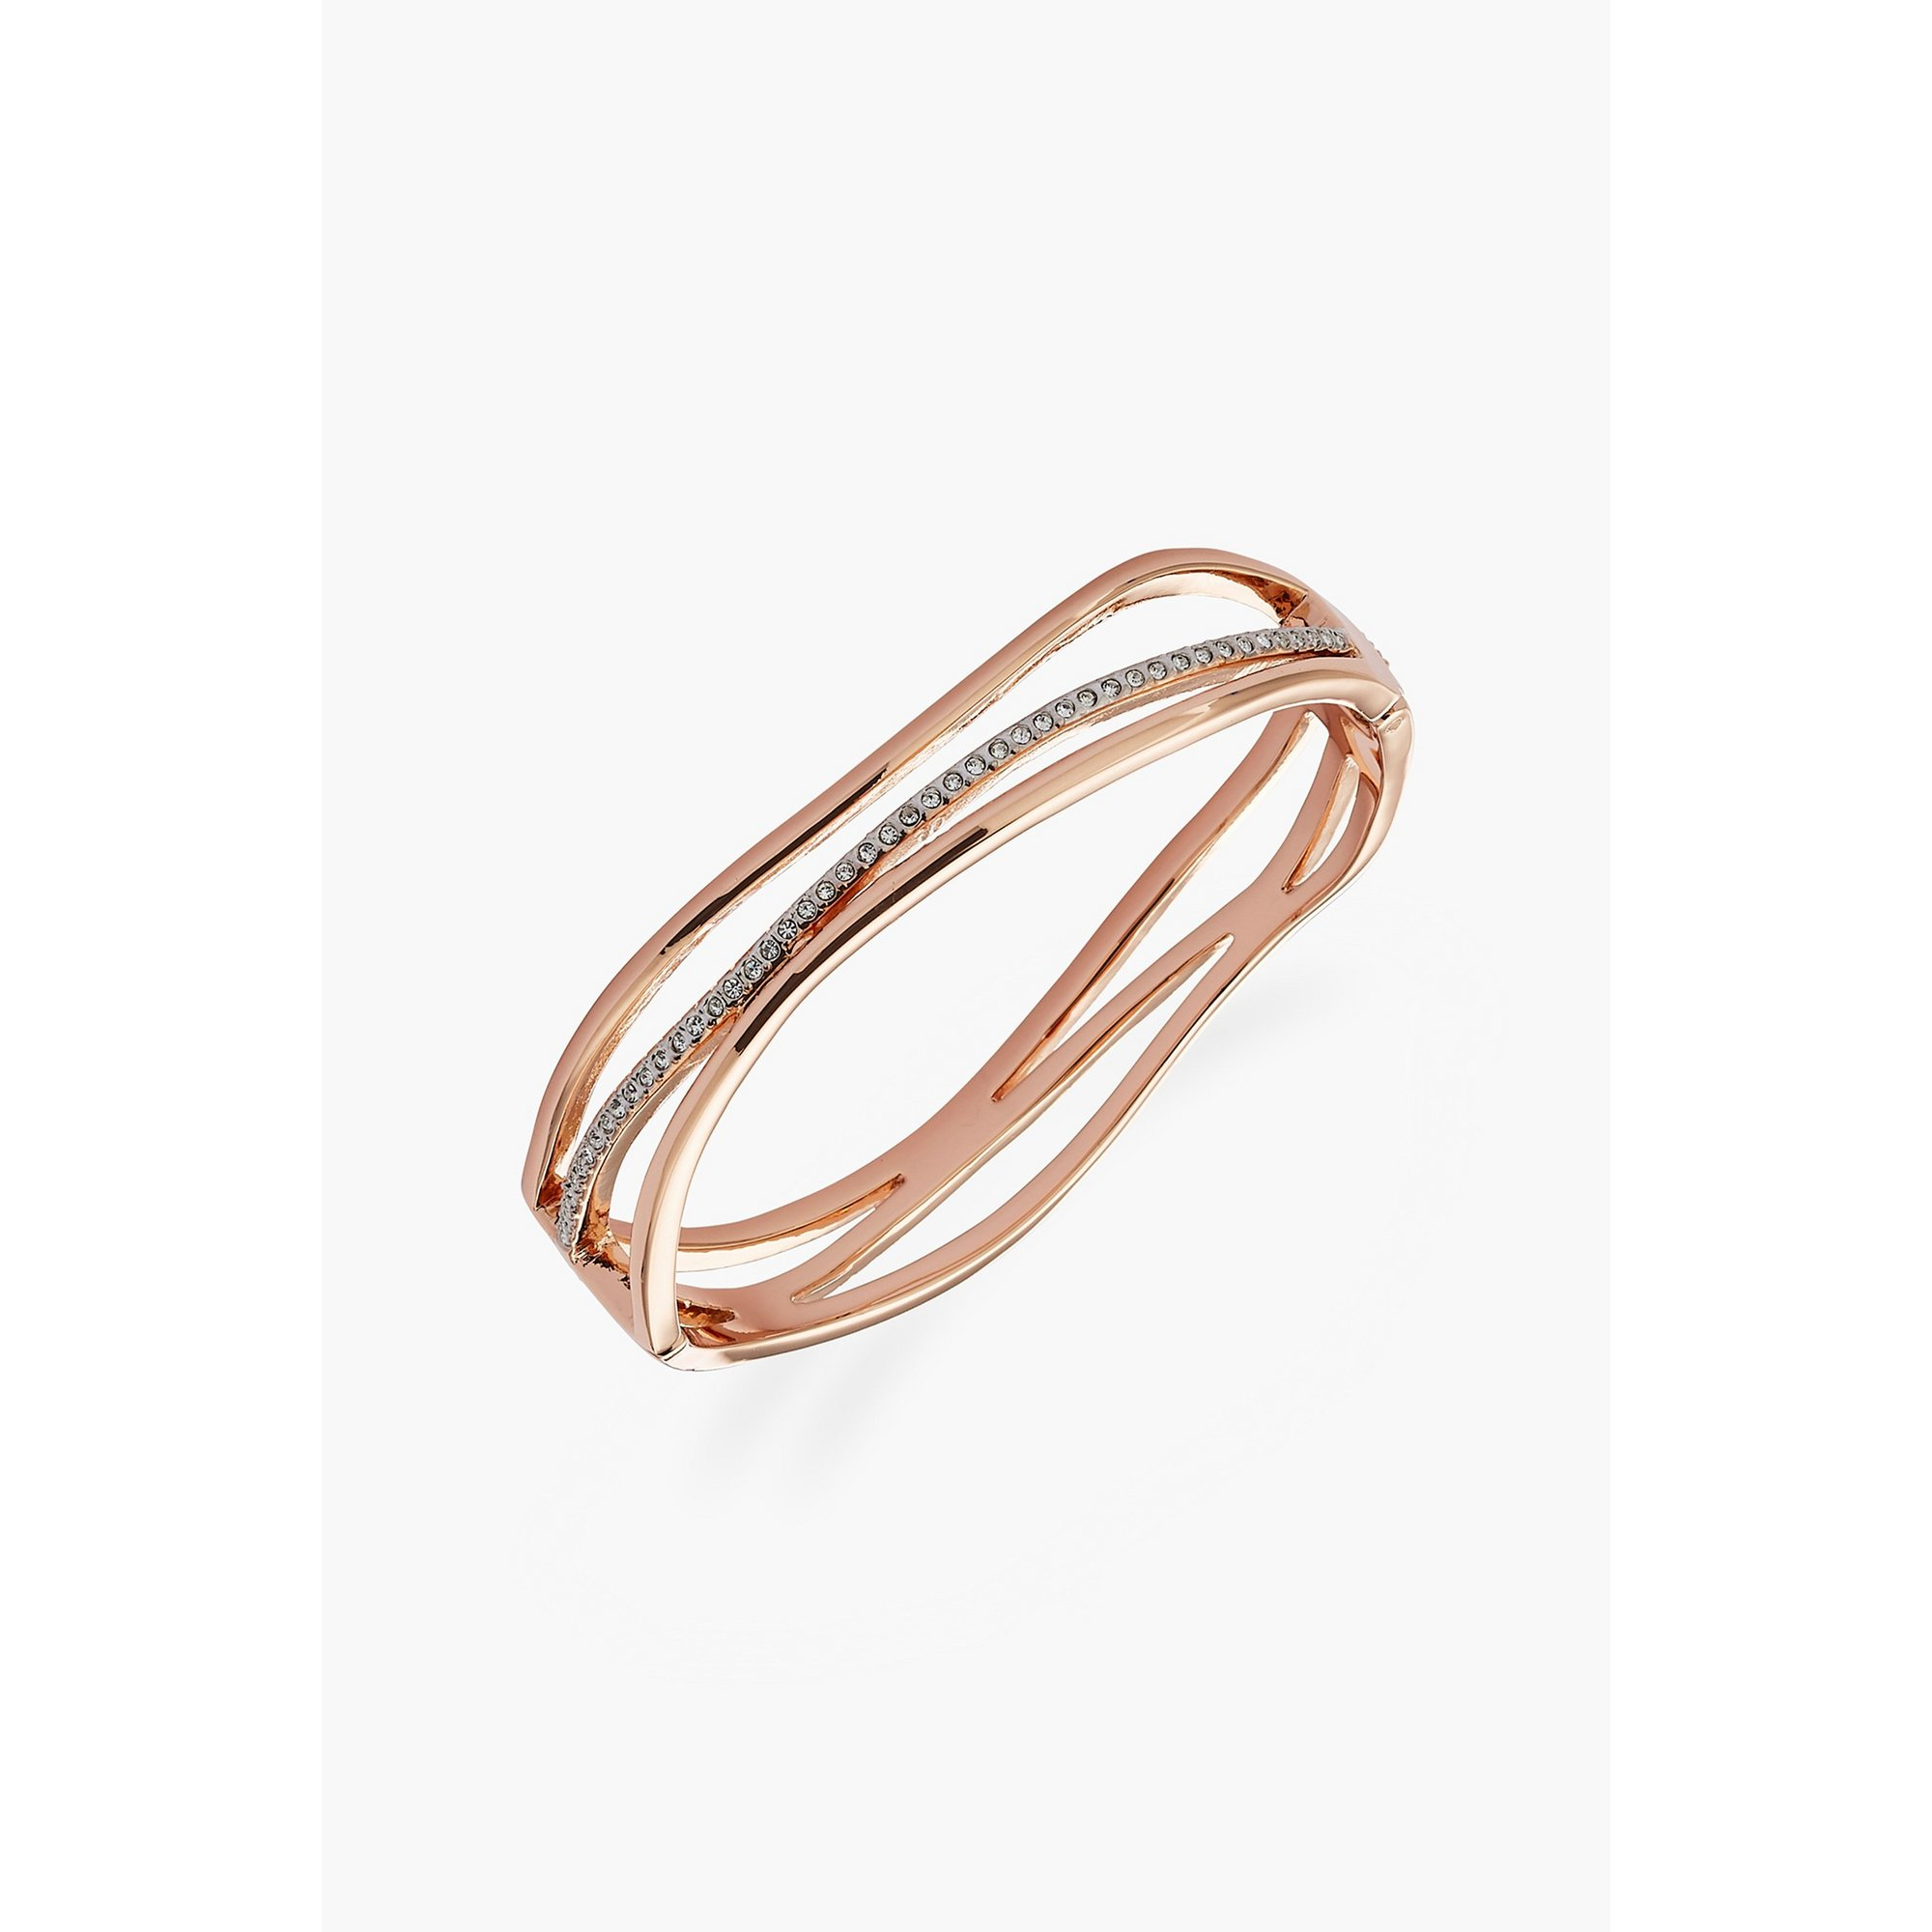 Image of Buckley London Bayswater Bangle